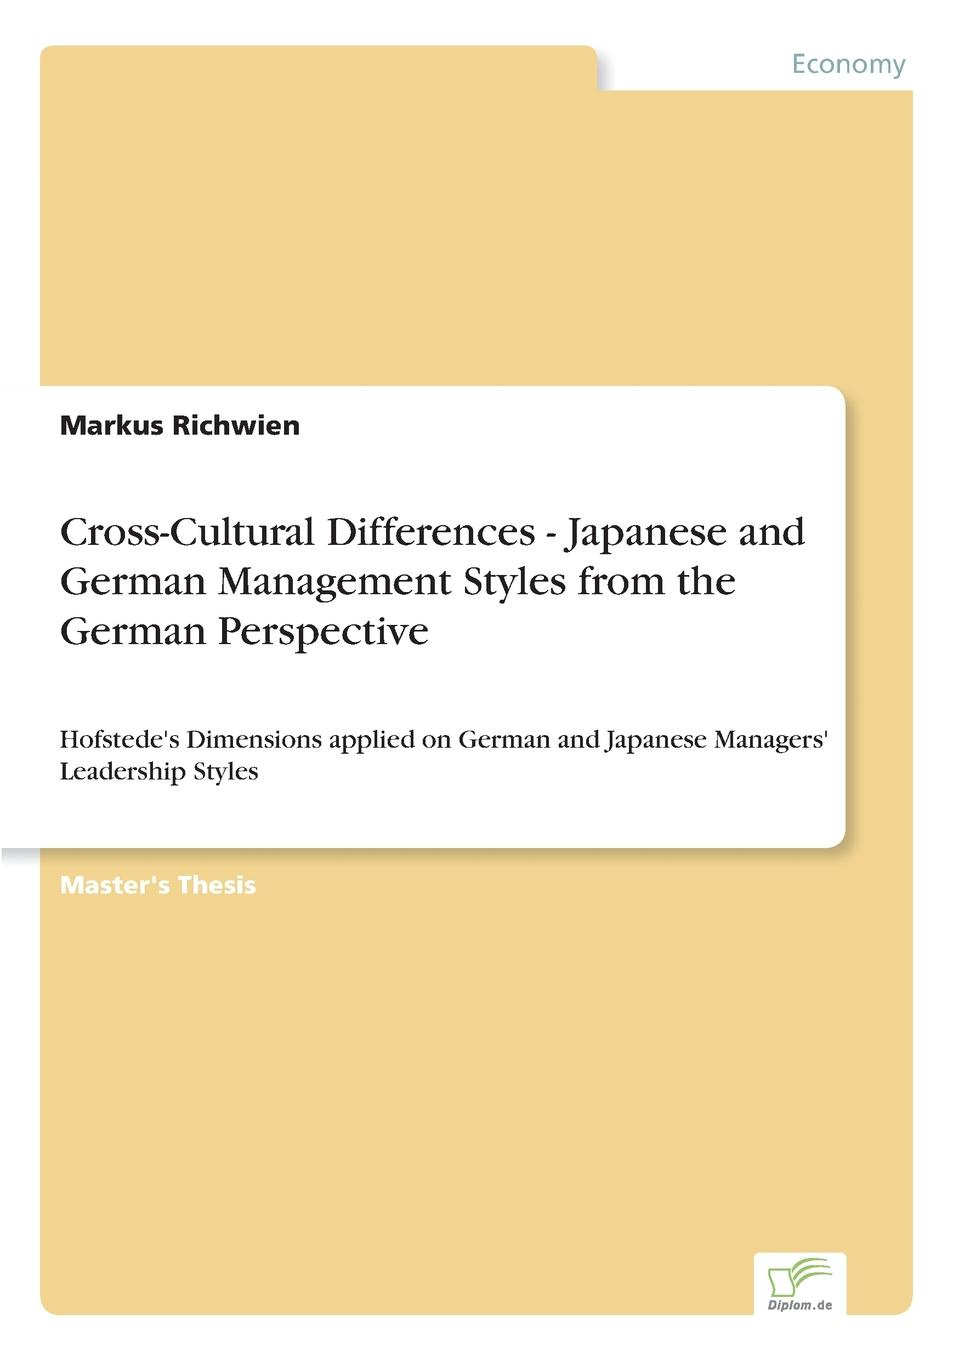 Markus Richwien Cross-Cultural Differences - Japanese and German Management Styles from the German Perspective sherwyn morreale building the high trust organization strategies for supporting five key dimensions of trust